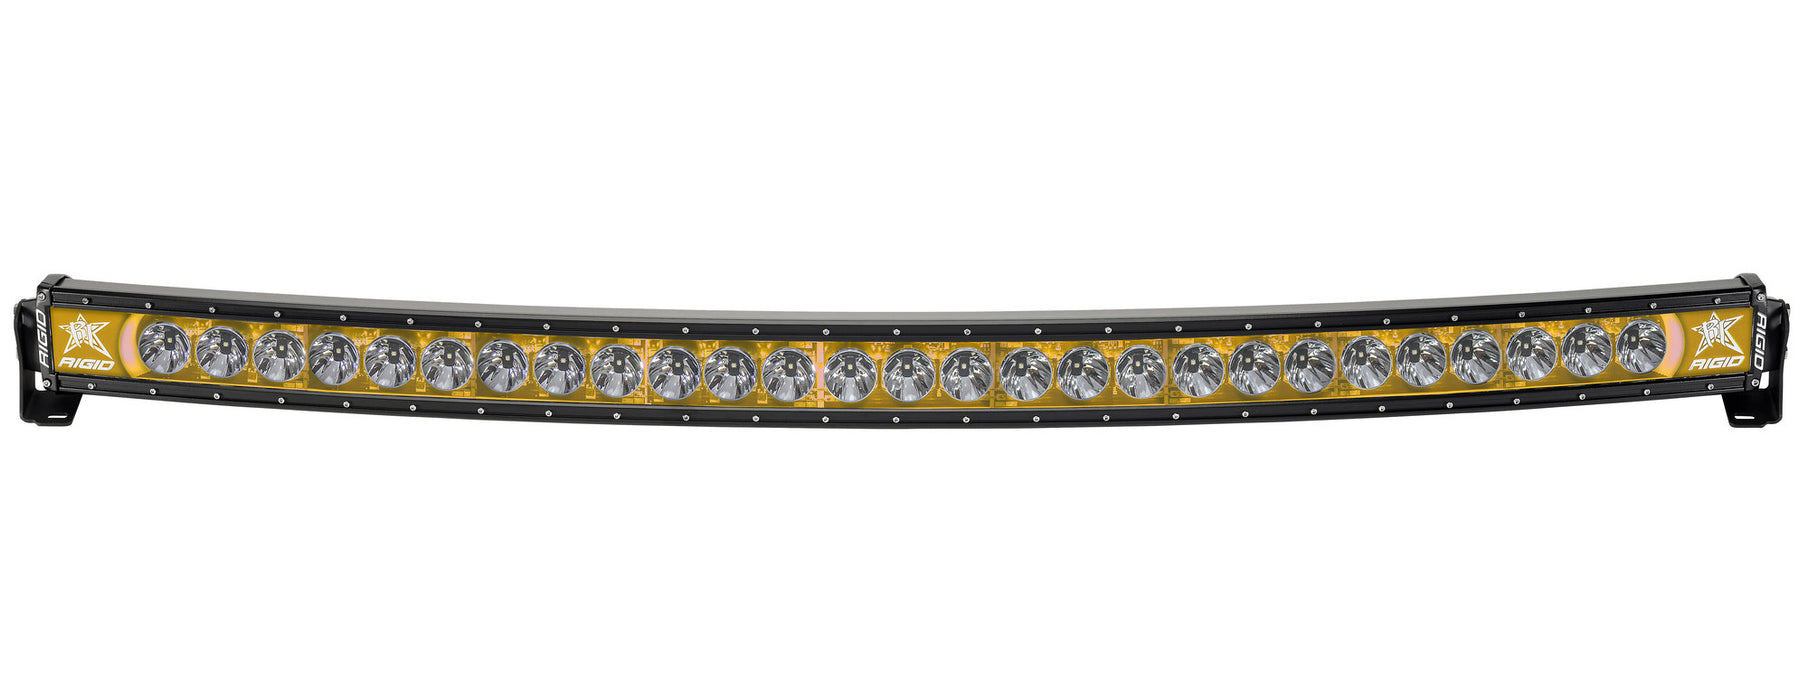 "Rigid Industries Radiance Plus Series Curved 50"" Multi-Color LED Light Bars - Wreckless Motorsports"